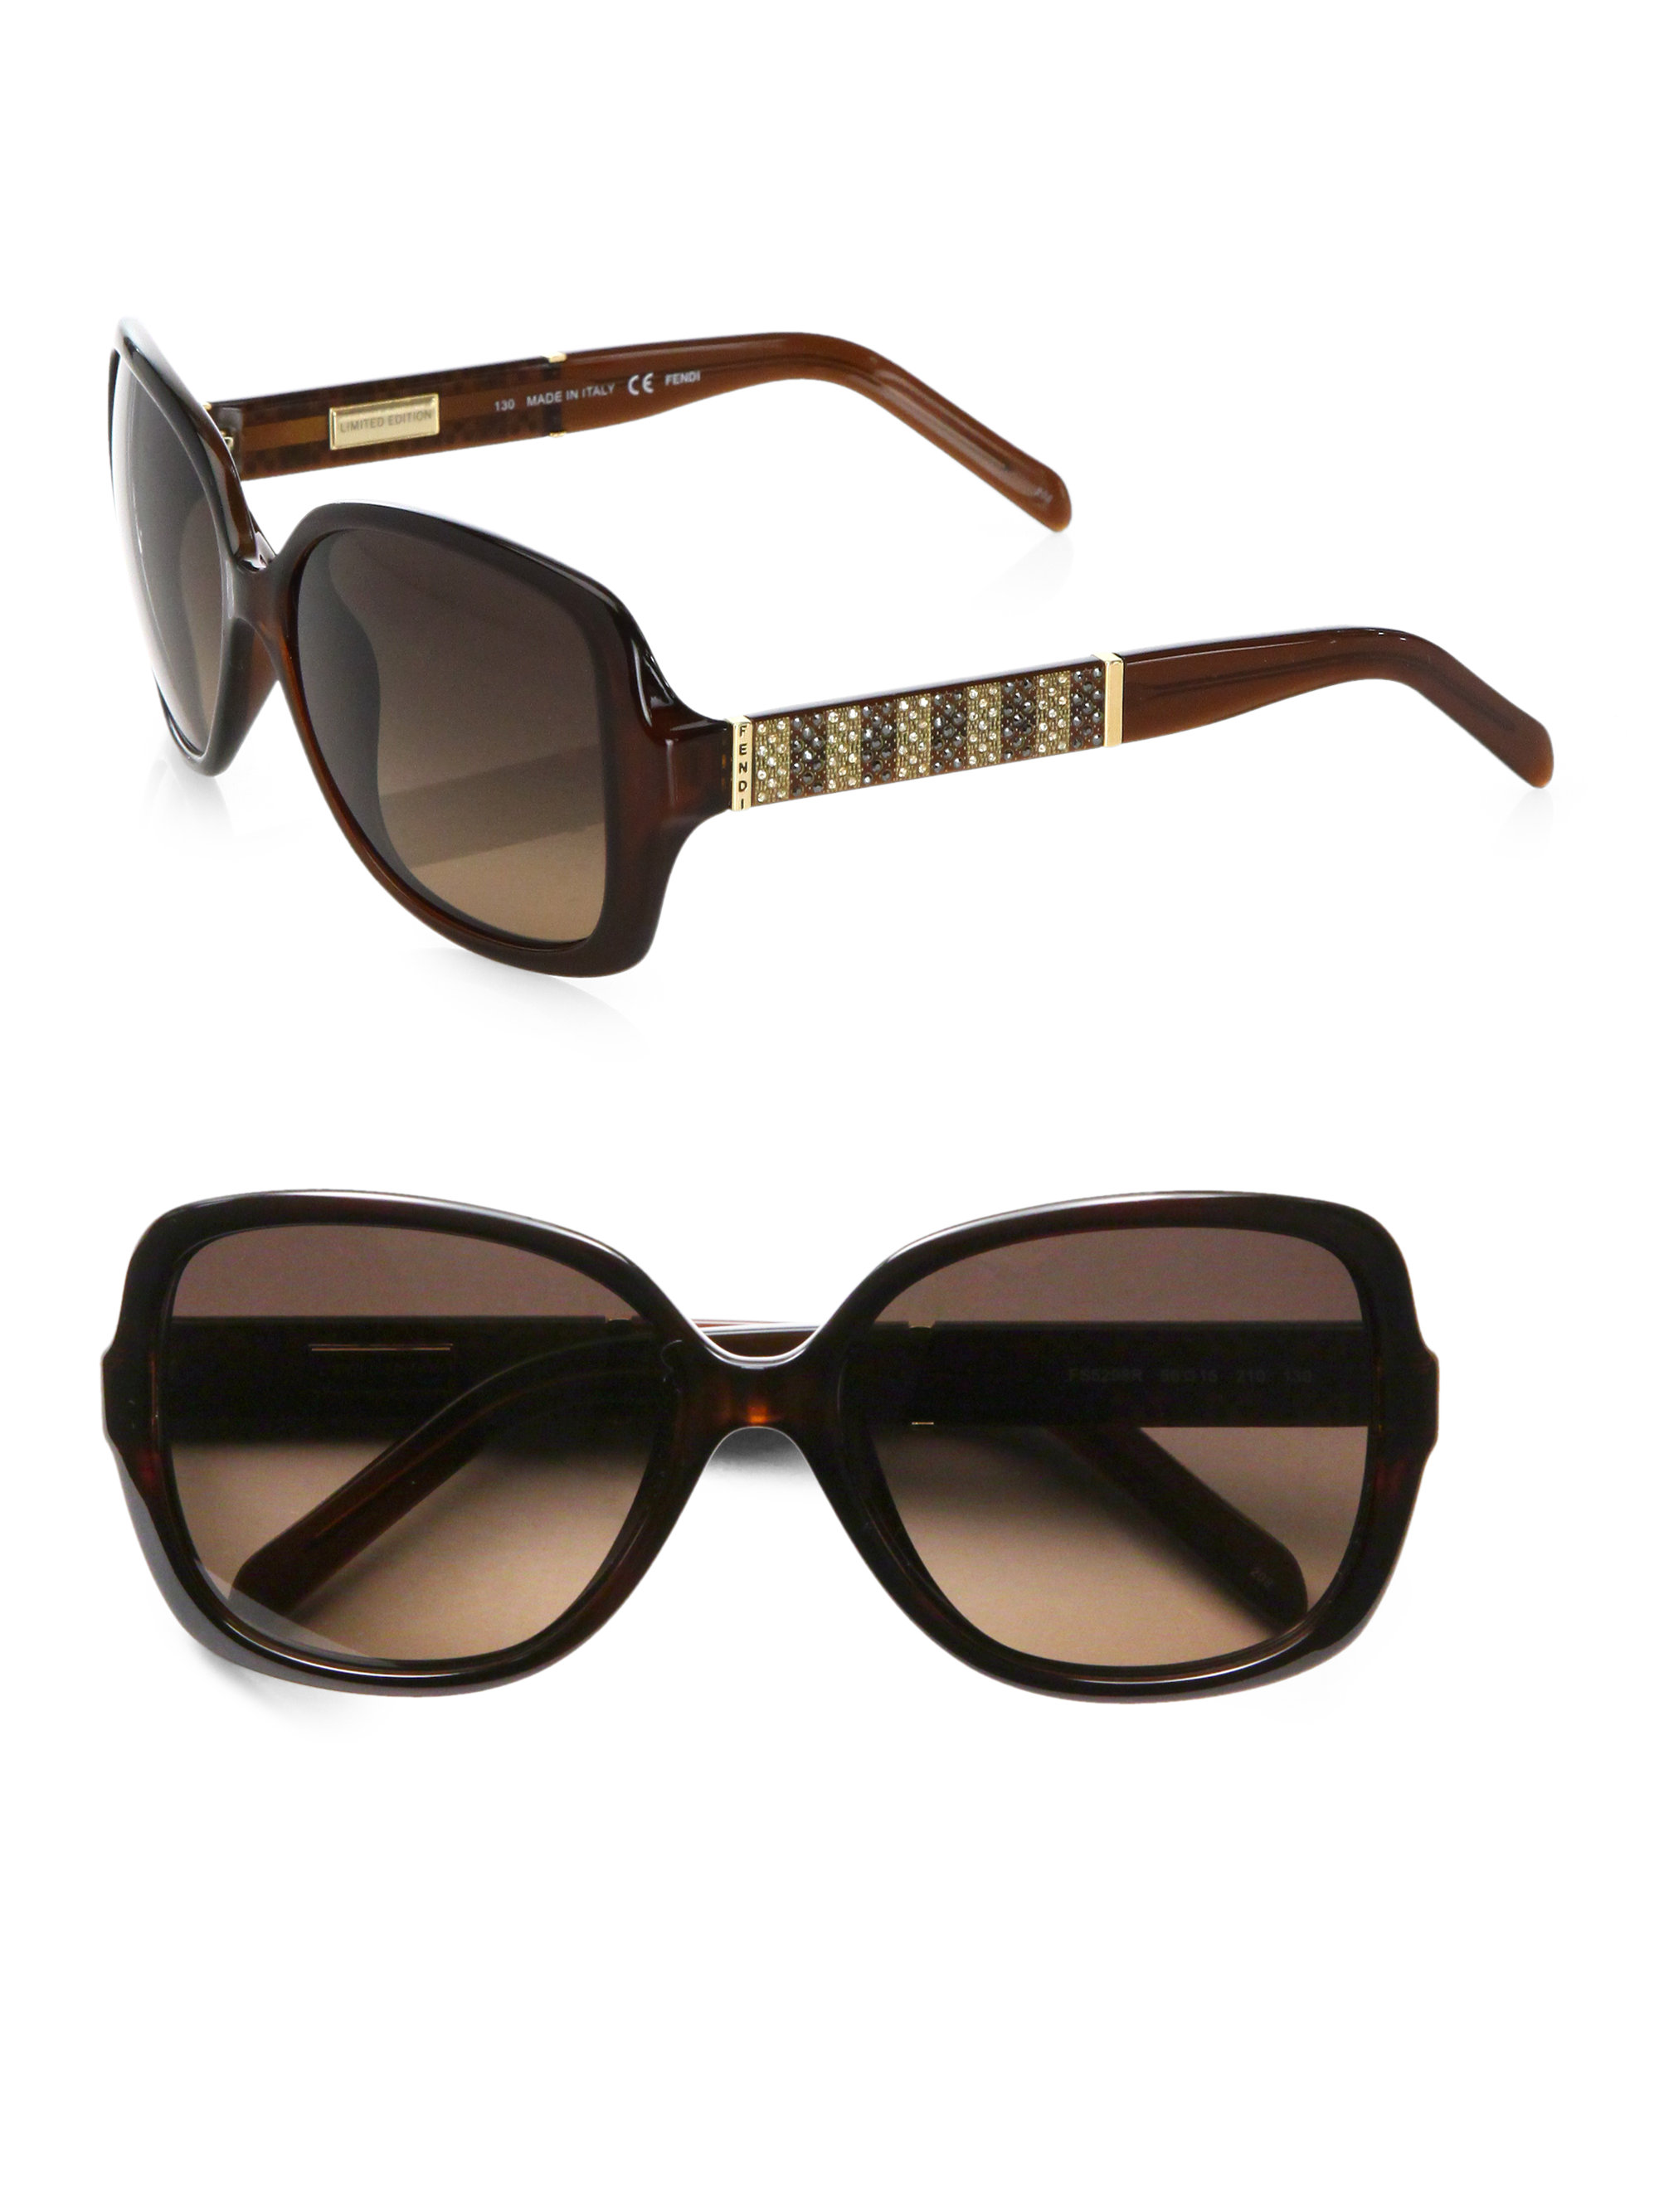 198223d9df21 Lyst - Fendi Pequin Limited Edition Rectangular Sunglasses in Brown